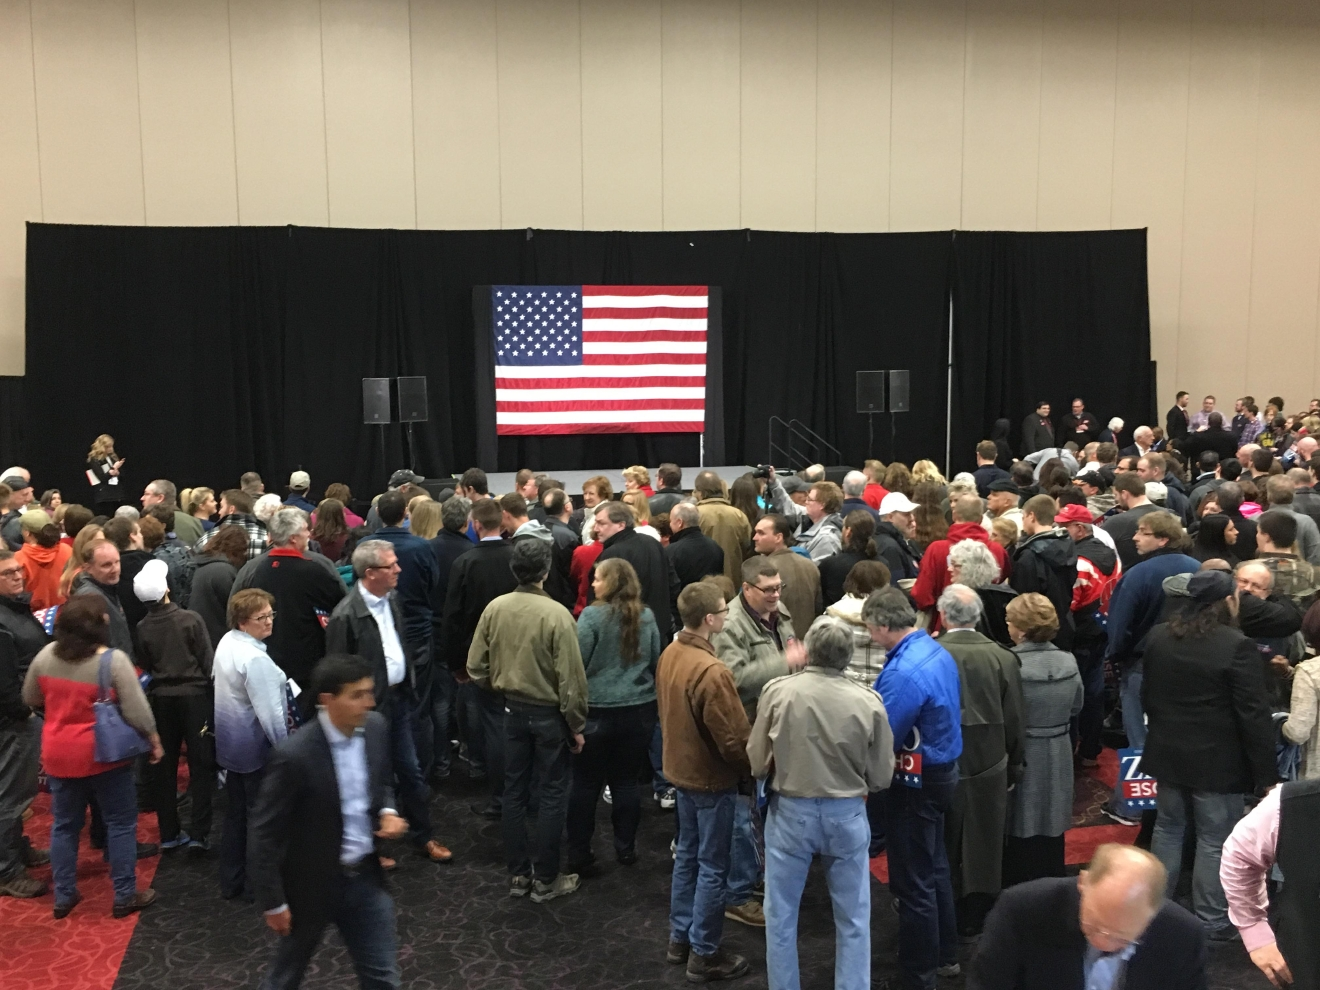 A crowd of people wait for Republican presidential candidate Ted Cruz to take the stage at the KI Convention Center in Green Bay. (WLUK/Andrew LaCombe)